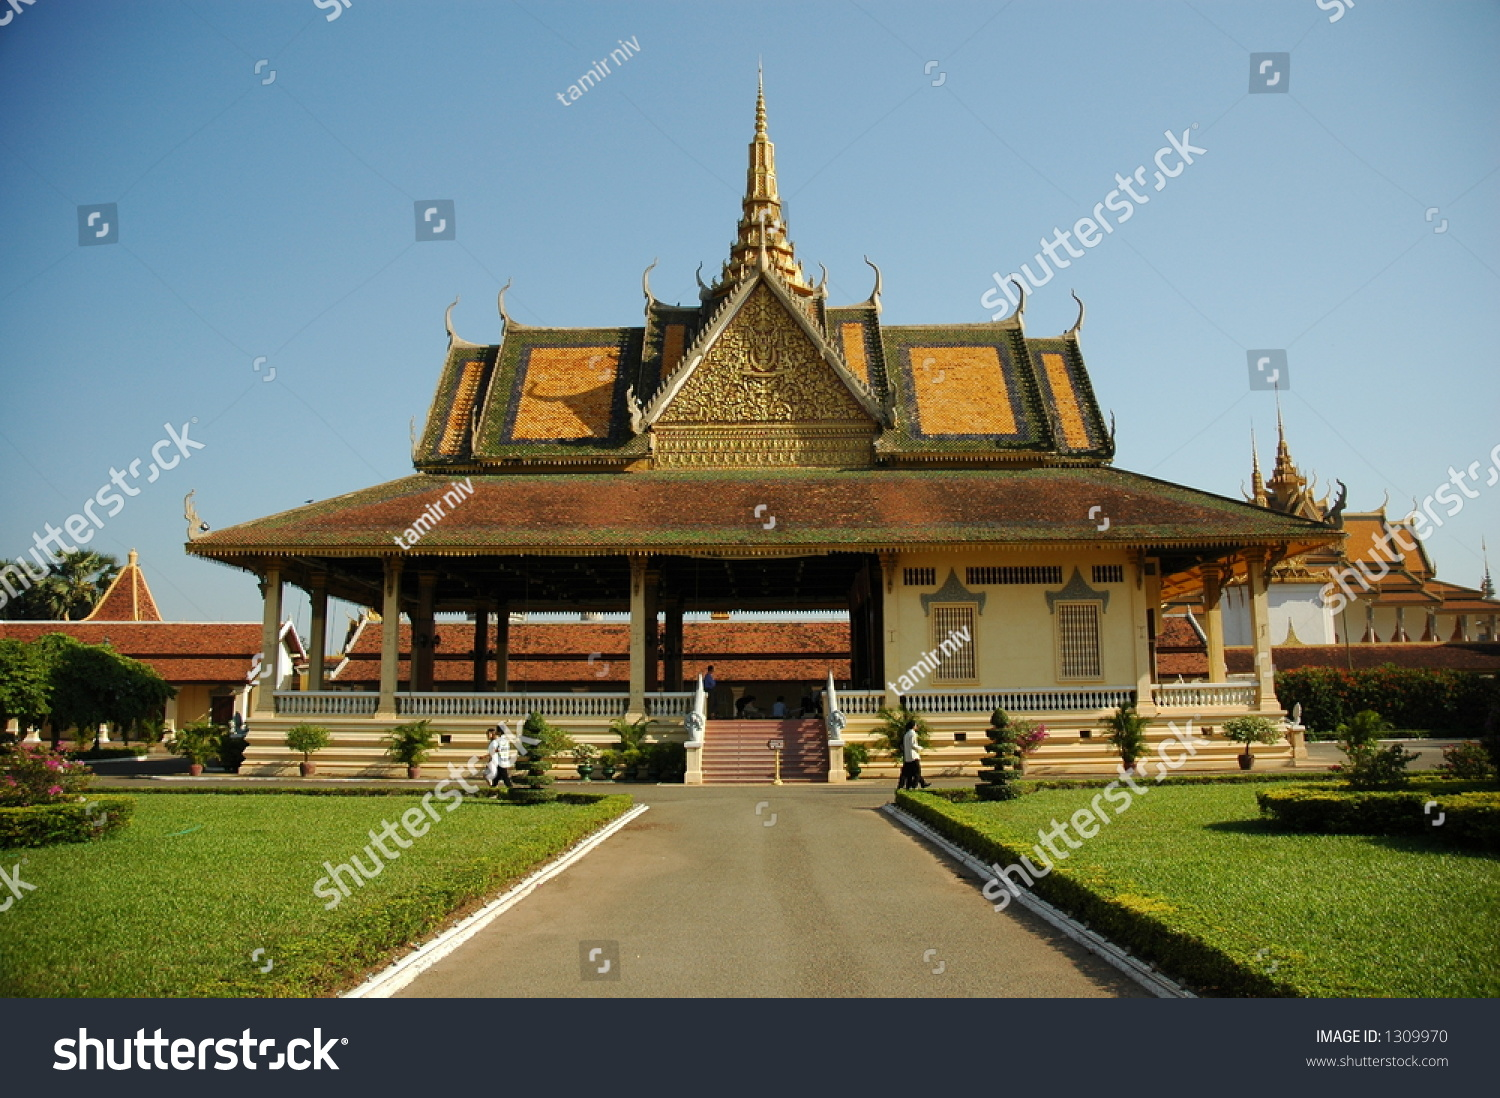 Cambodian architecture stock photo 1309970 shutterstock for Architecture khmer